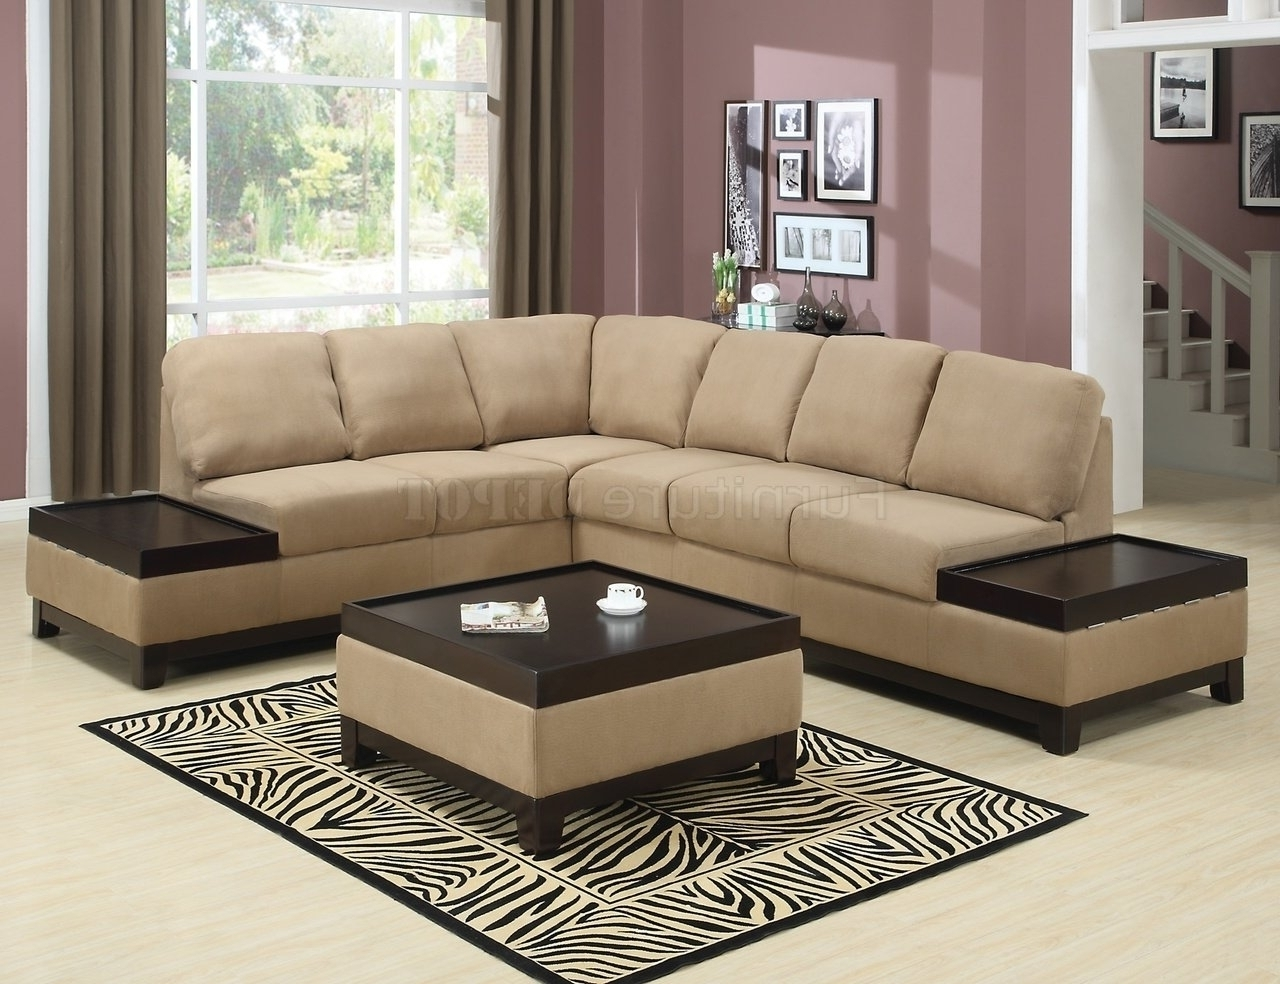 Sectional Sofas Tulsa | Book Of Stefanie For Tulsa Sectional Sofas (View 7 of 10)